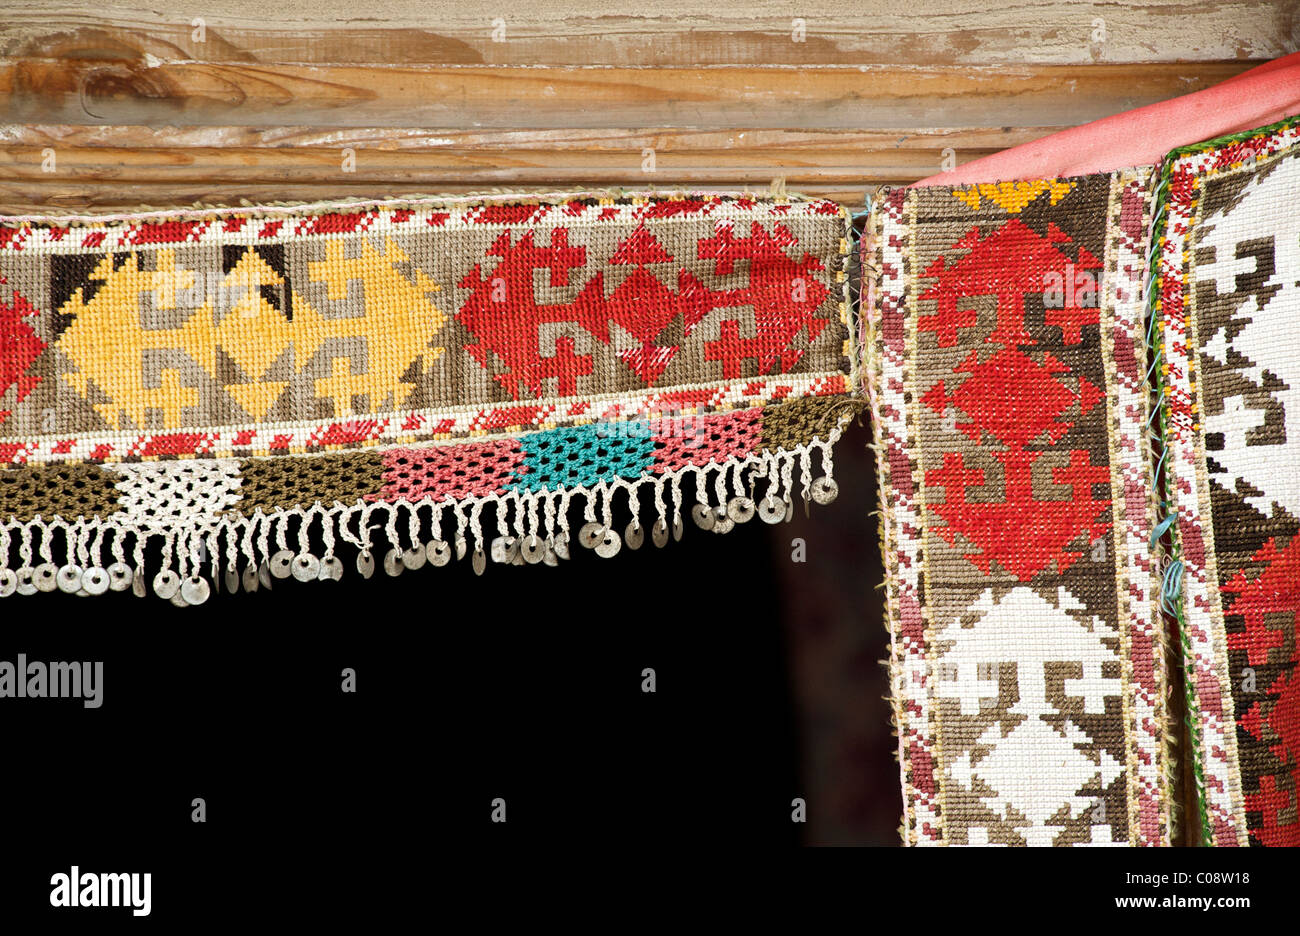 Colourful embroidered fabric hanging in a doorway Bukhara, Uzbekistan - Stock Image